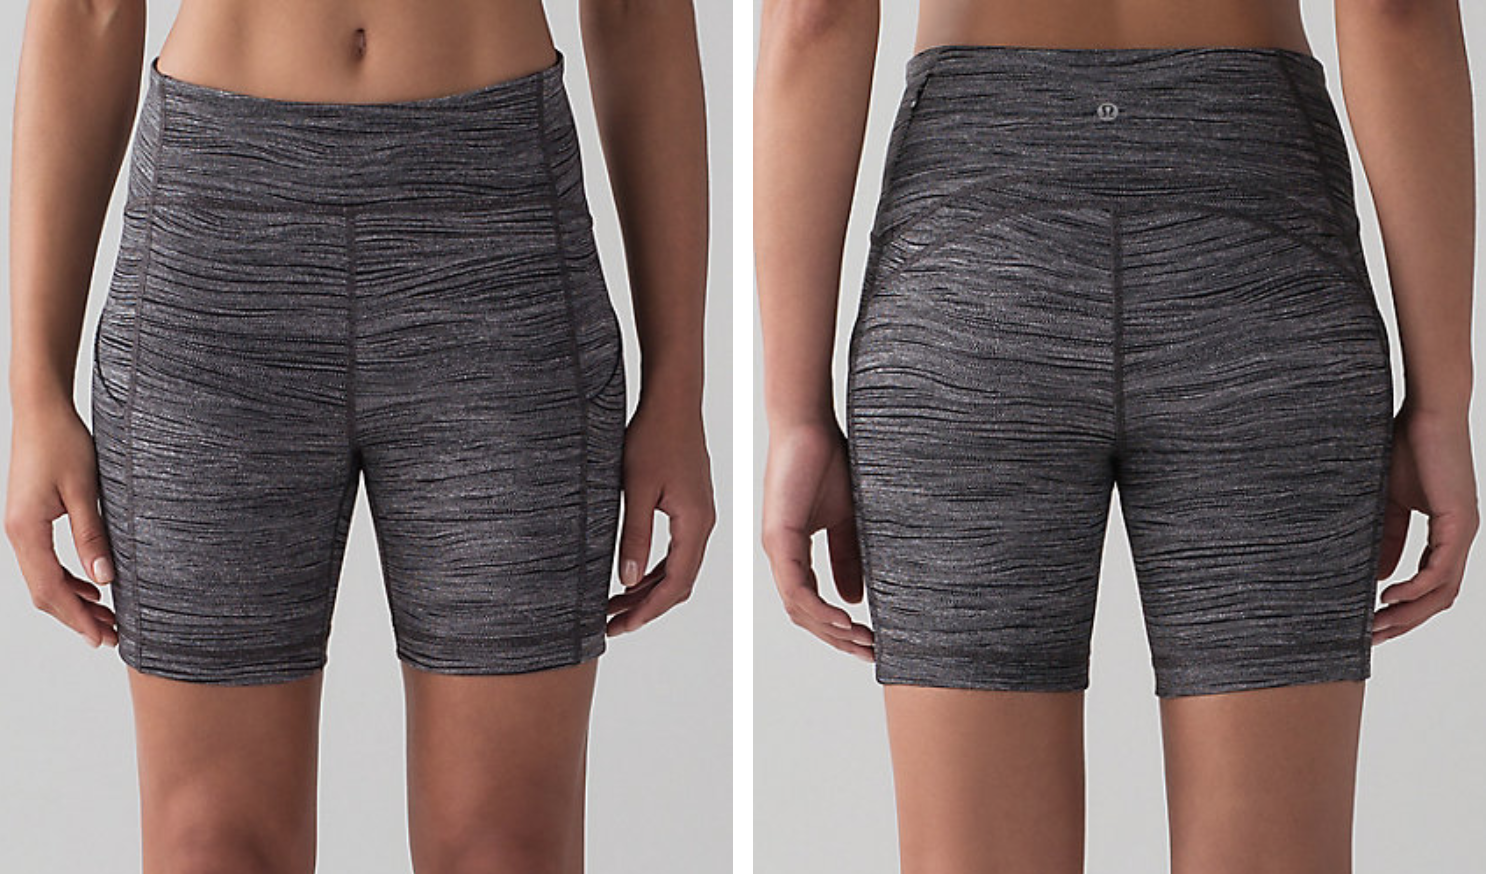 https://api.shopstyle.com/action/apiVisitRetailer?url=https%3A%2F%2Fshop.lululemon.com%2Fp%2Fwomen-shorts%2FSole-Training-Short%2F_%2Fprod8431344%3Frcnt%3D15%26N%3D1z13ziiZ7z5%26cnt%3D59%26color%3DLW7AG6S_029260&site=www.shopstyle.ca&pid=uid6784-25288972-7